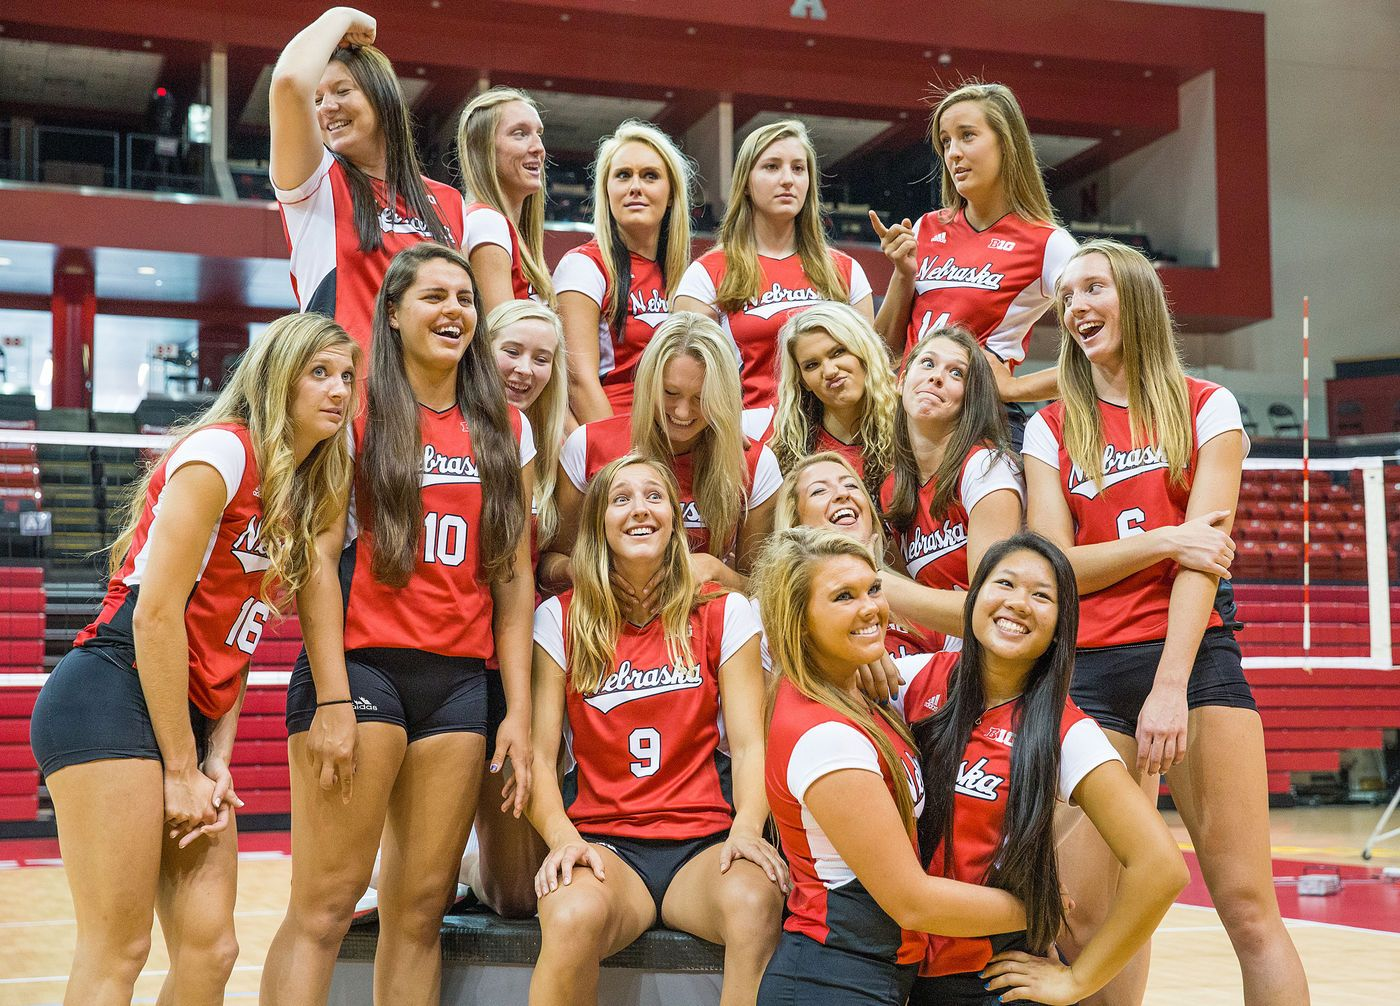 Design Custom Ladies Volleyball Jerseys Womens Volleyball Is One Of The Most Popular Sports In Middle S Volleyball Uniforms Volleyball Jerseys Women Volleyball